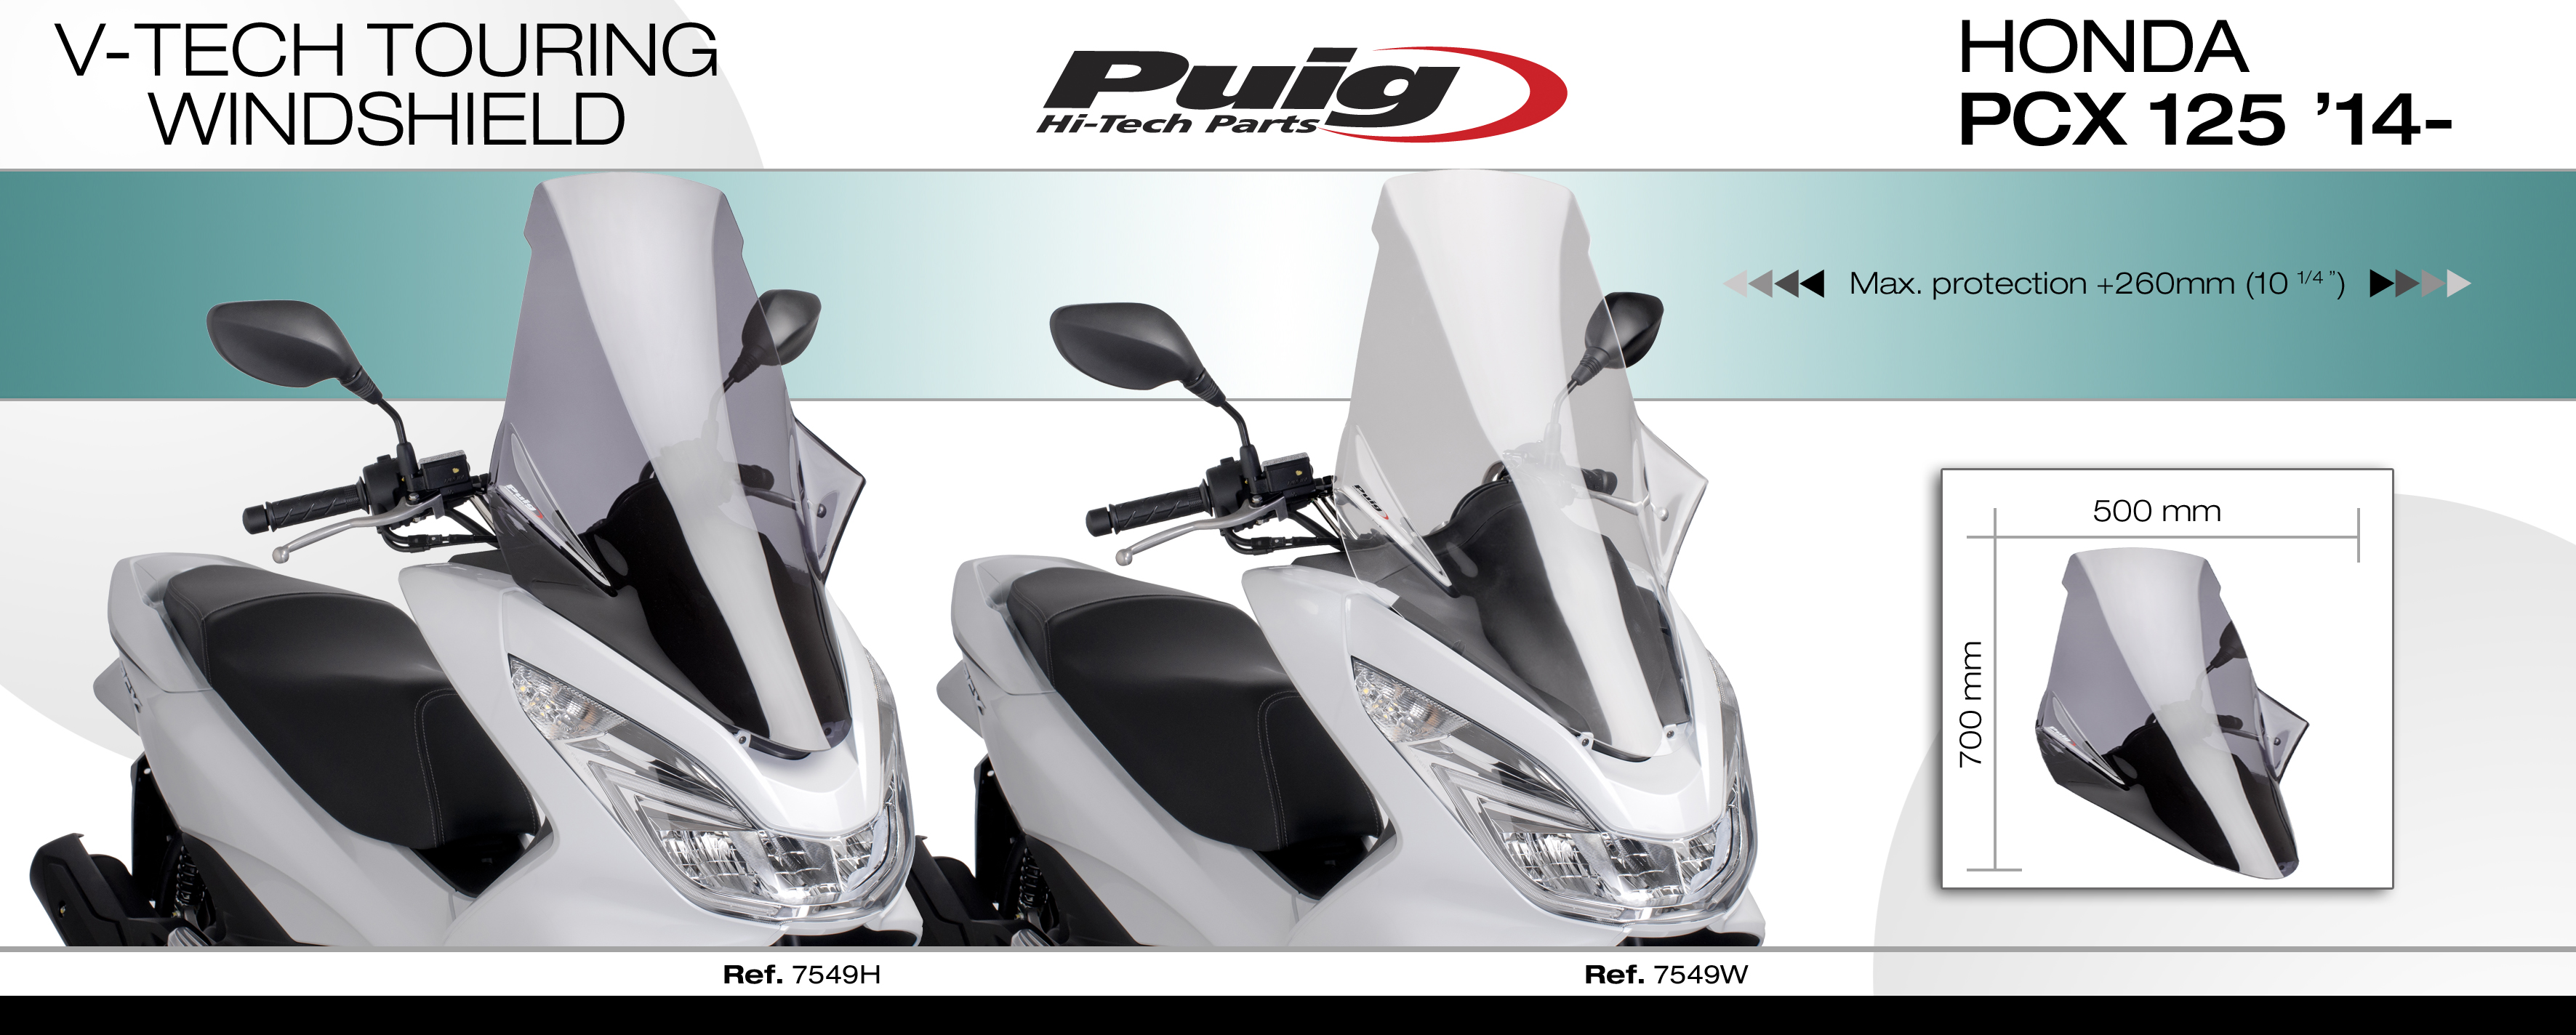 Honda Pcx 125 2014 Puig Screen Smoke V Tech Touring Windscreen Tankpad The Design Has Been Developed Trough Virtual Wind Tunnel To Improve Stability And Oem Aerodynamic Penetration Its Angulated Shapes On Central